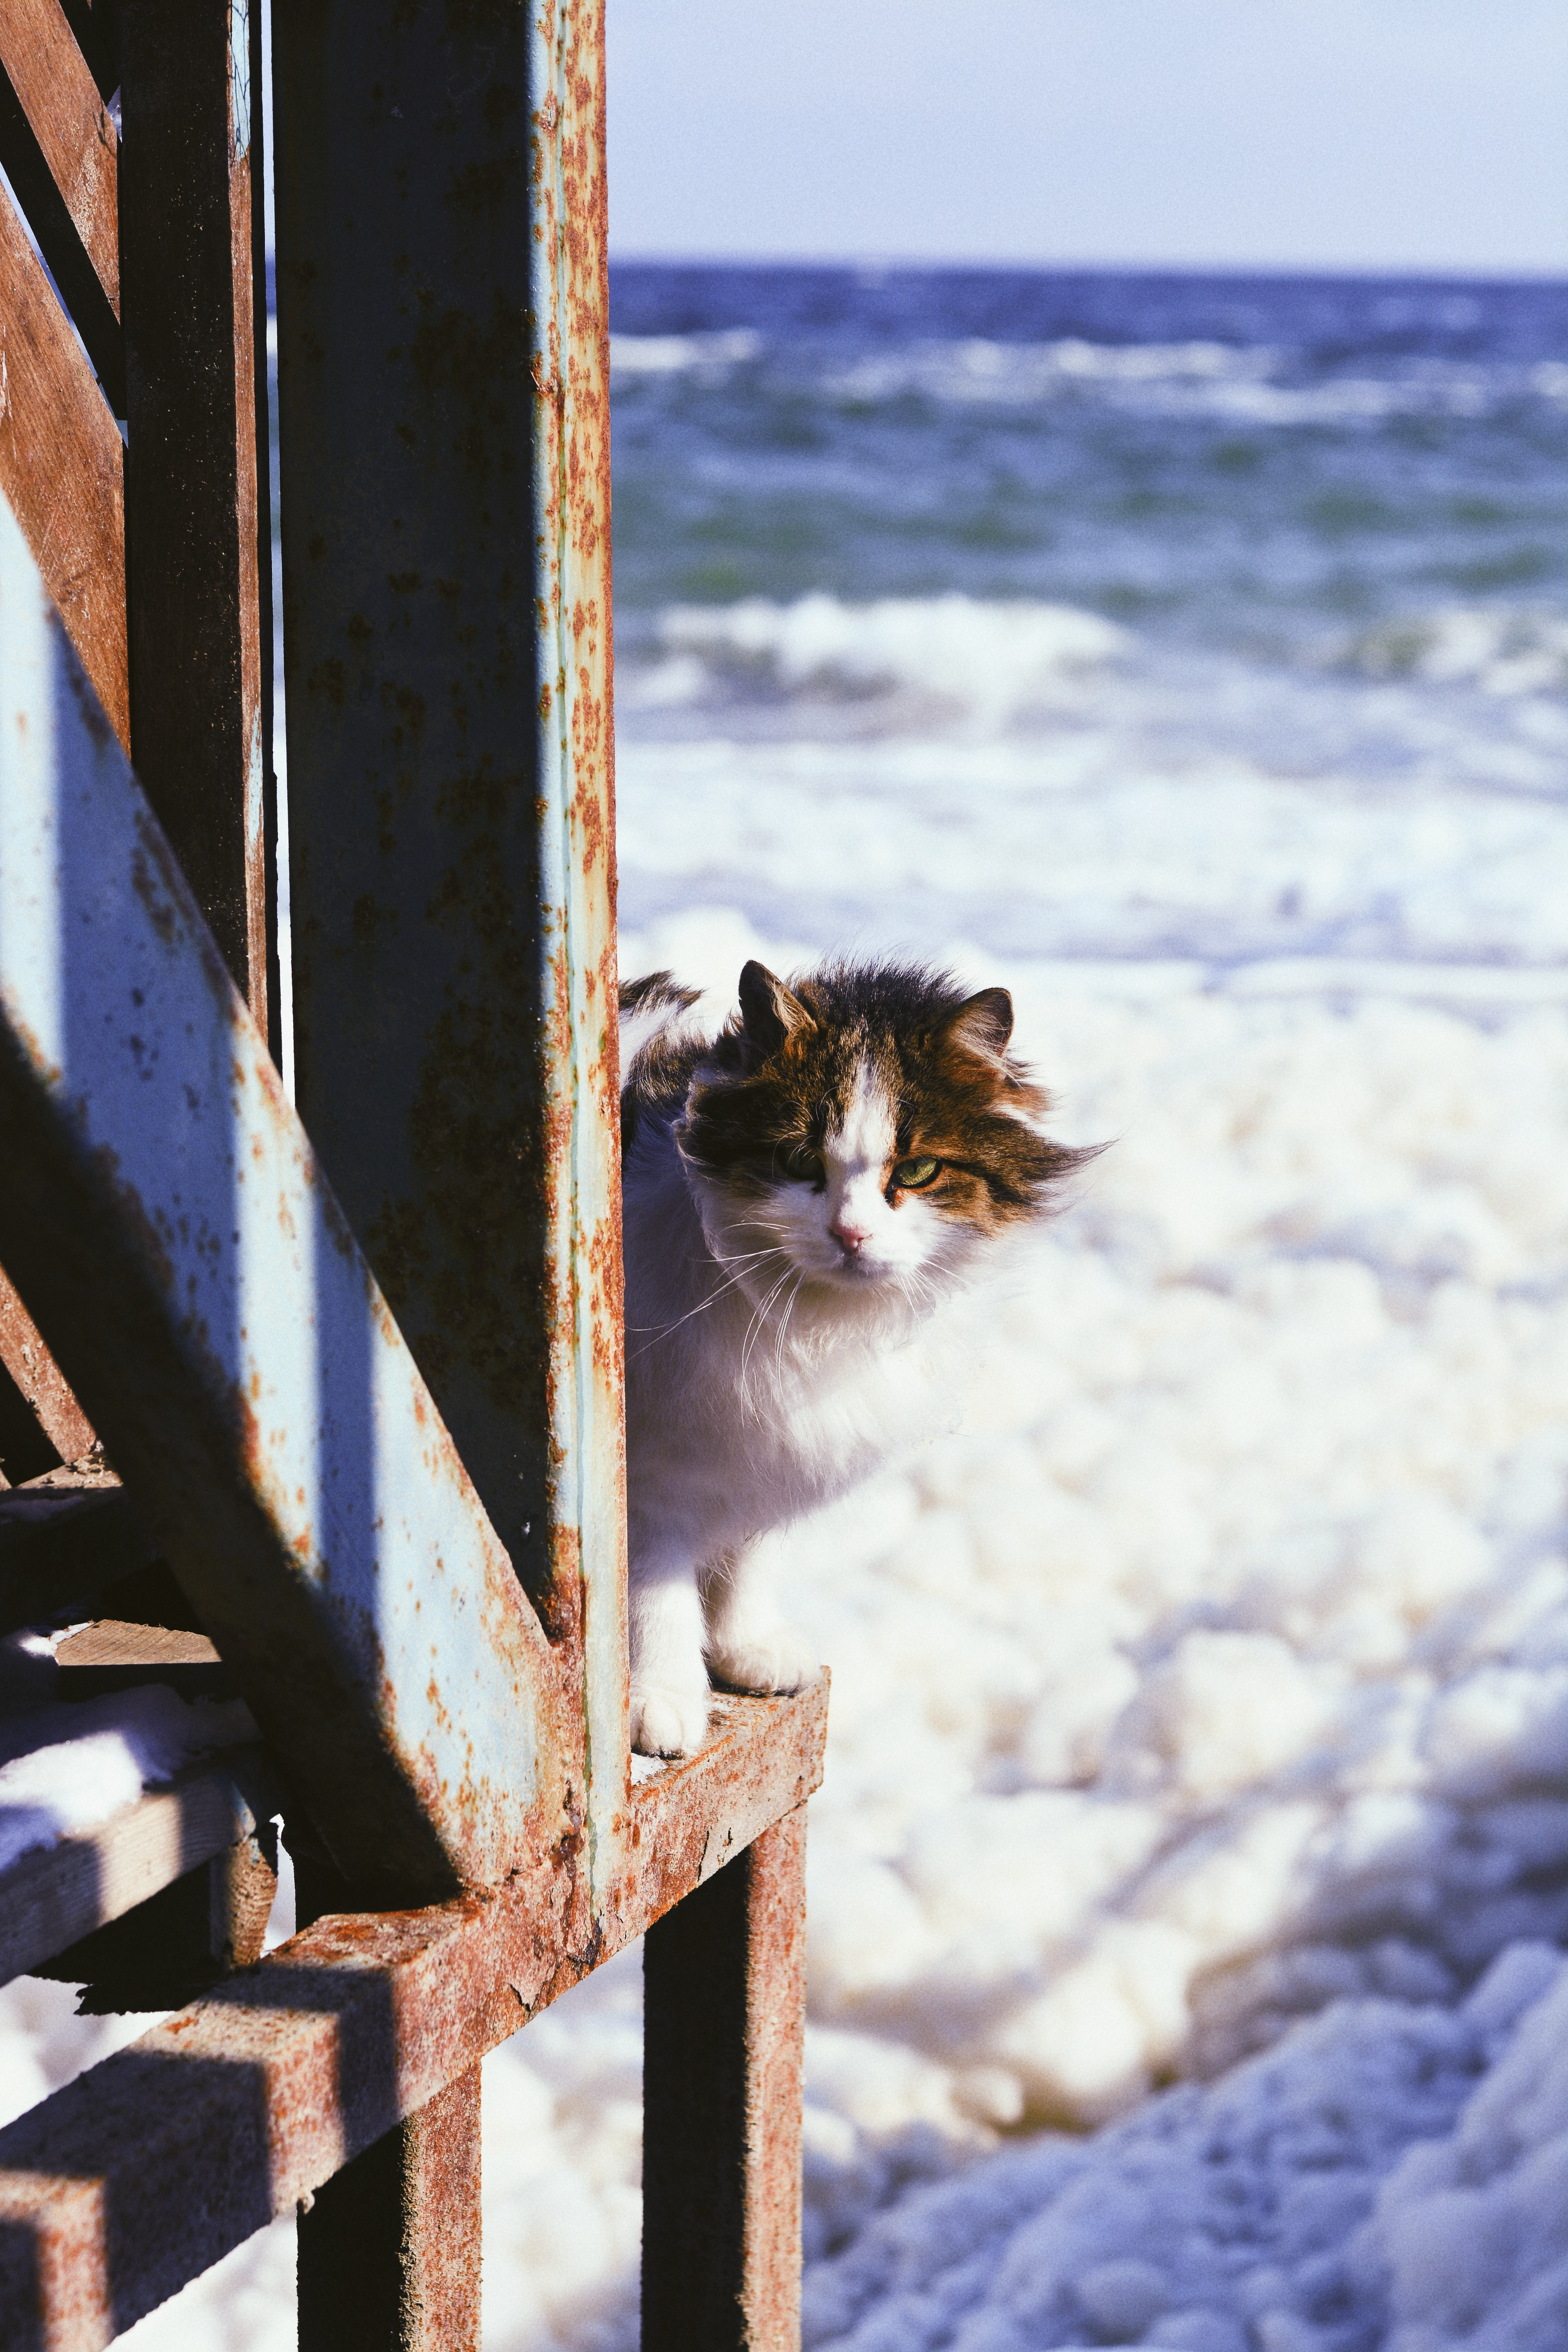 white and black tabby cat standing on brown metal stand